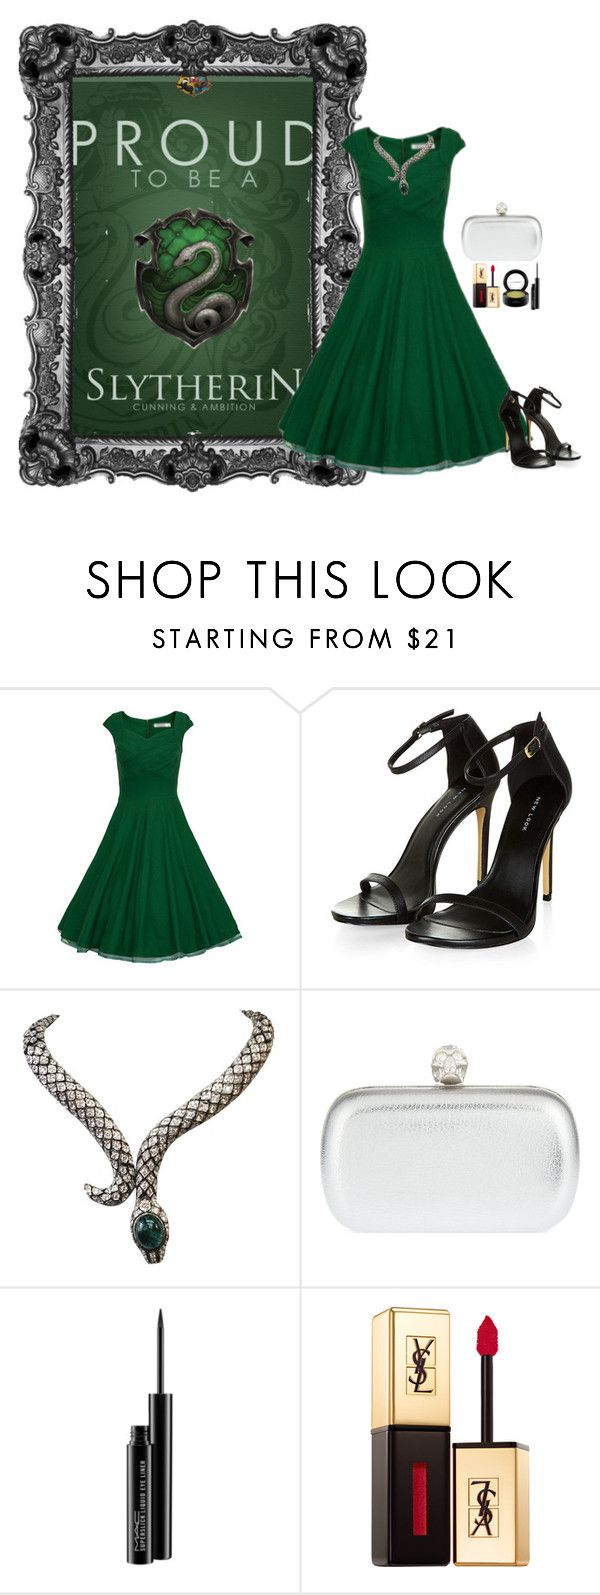 """""""Slytherin House"""" by emerald-writer-girl ❤ liked on Polyvore featuring Alexander McQueen, MAC Cosmetics, Yves Saint Laurent, harrypotter, slytherin, Silver, GREEN and HousePride"""